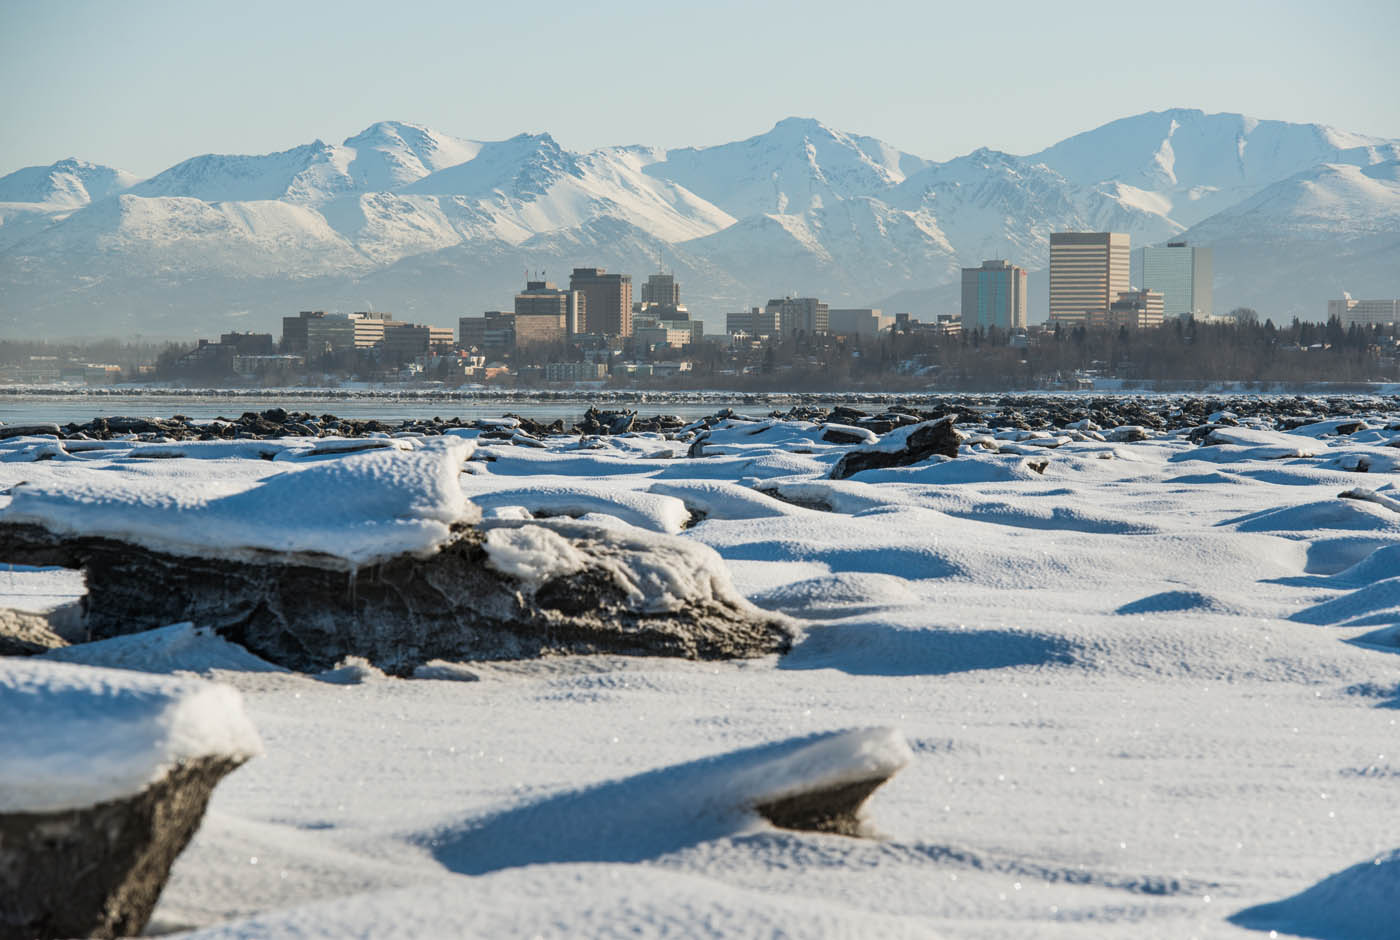 Anchorage Skyline in winter as seen from across the inlet